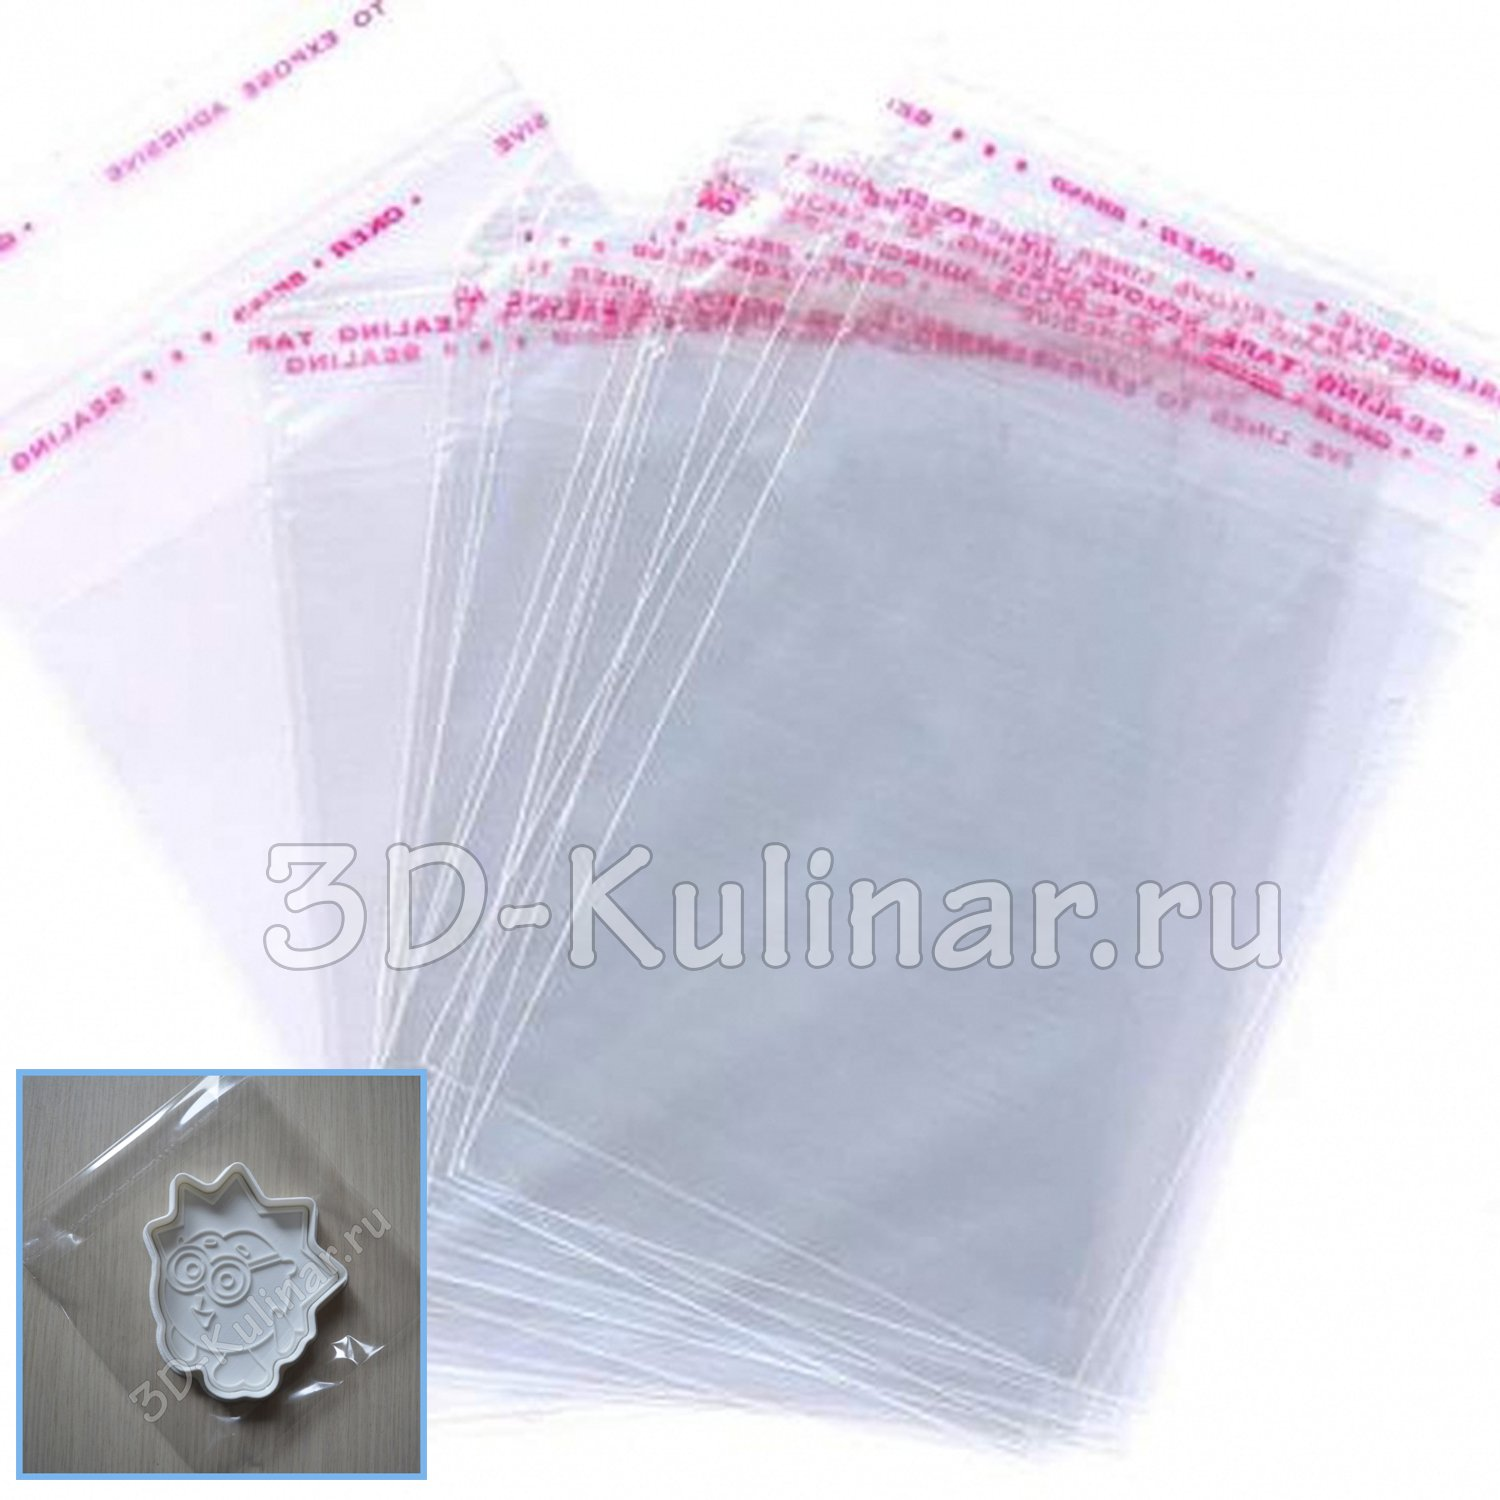 Plastic bag with glue, 14*14,5 cm